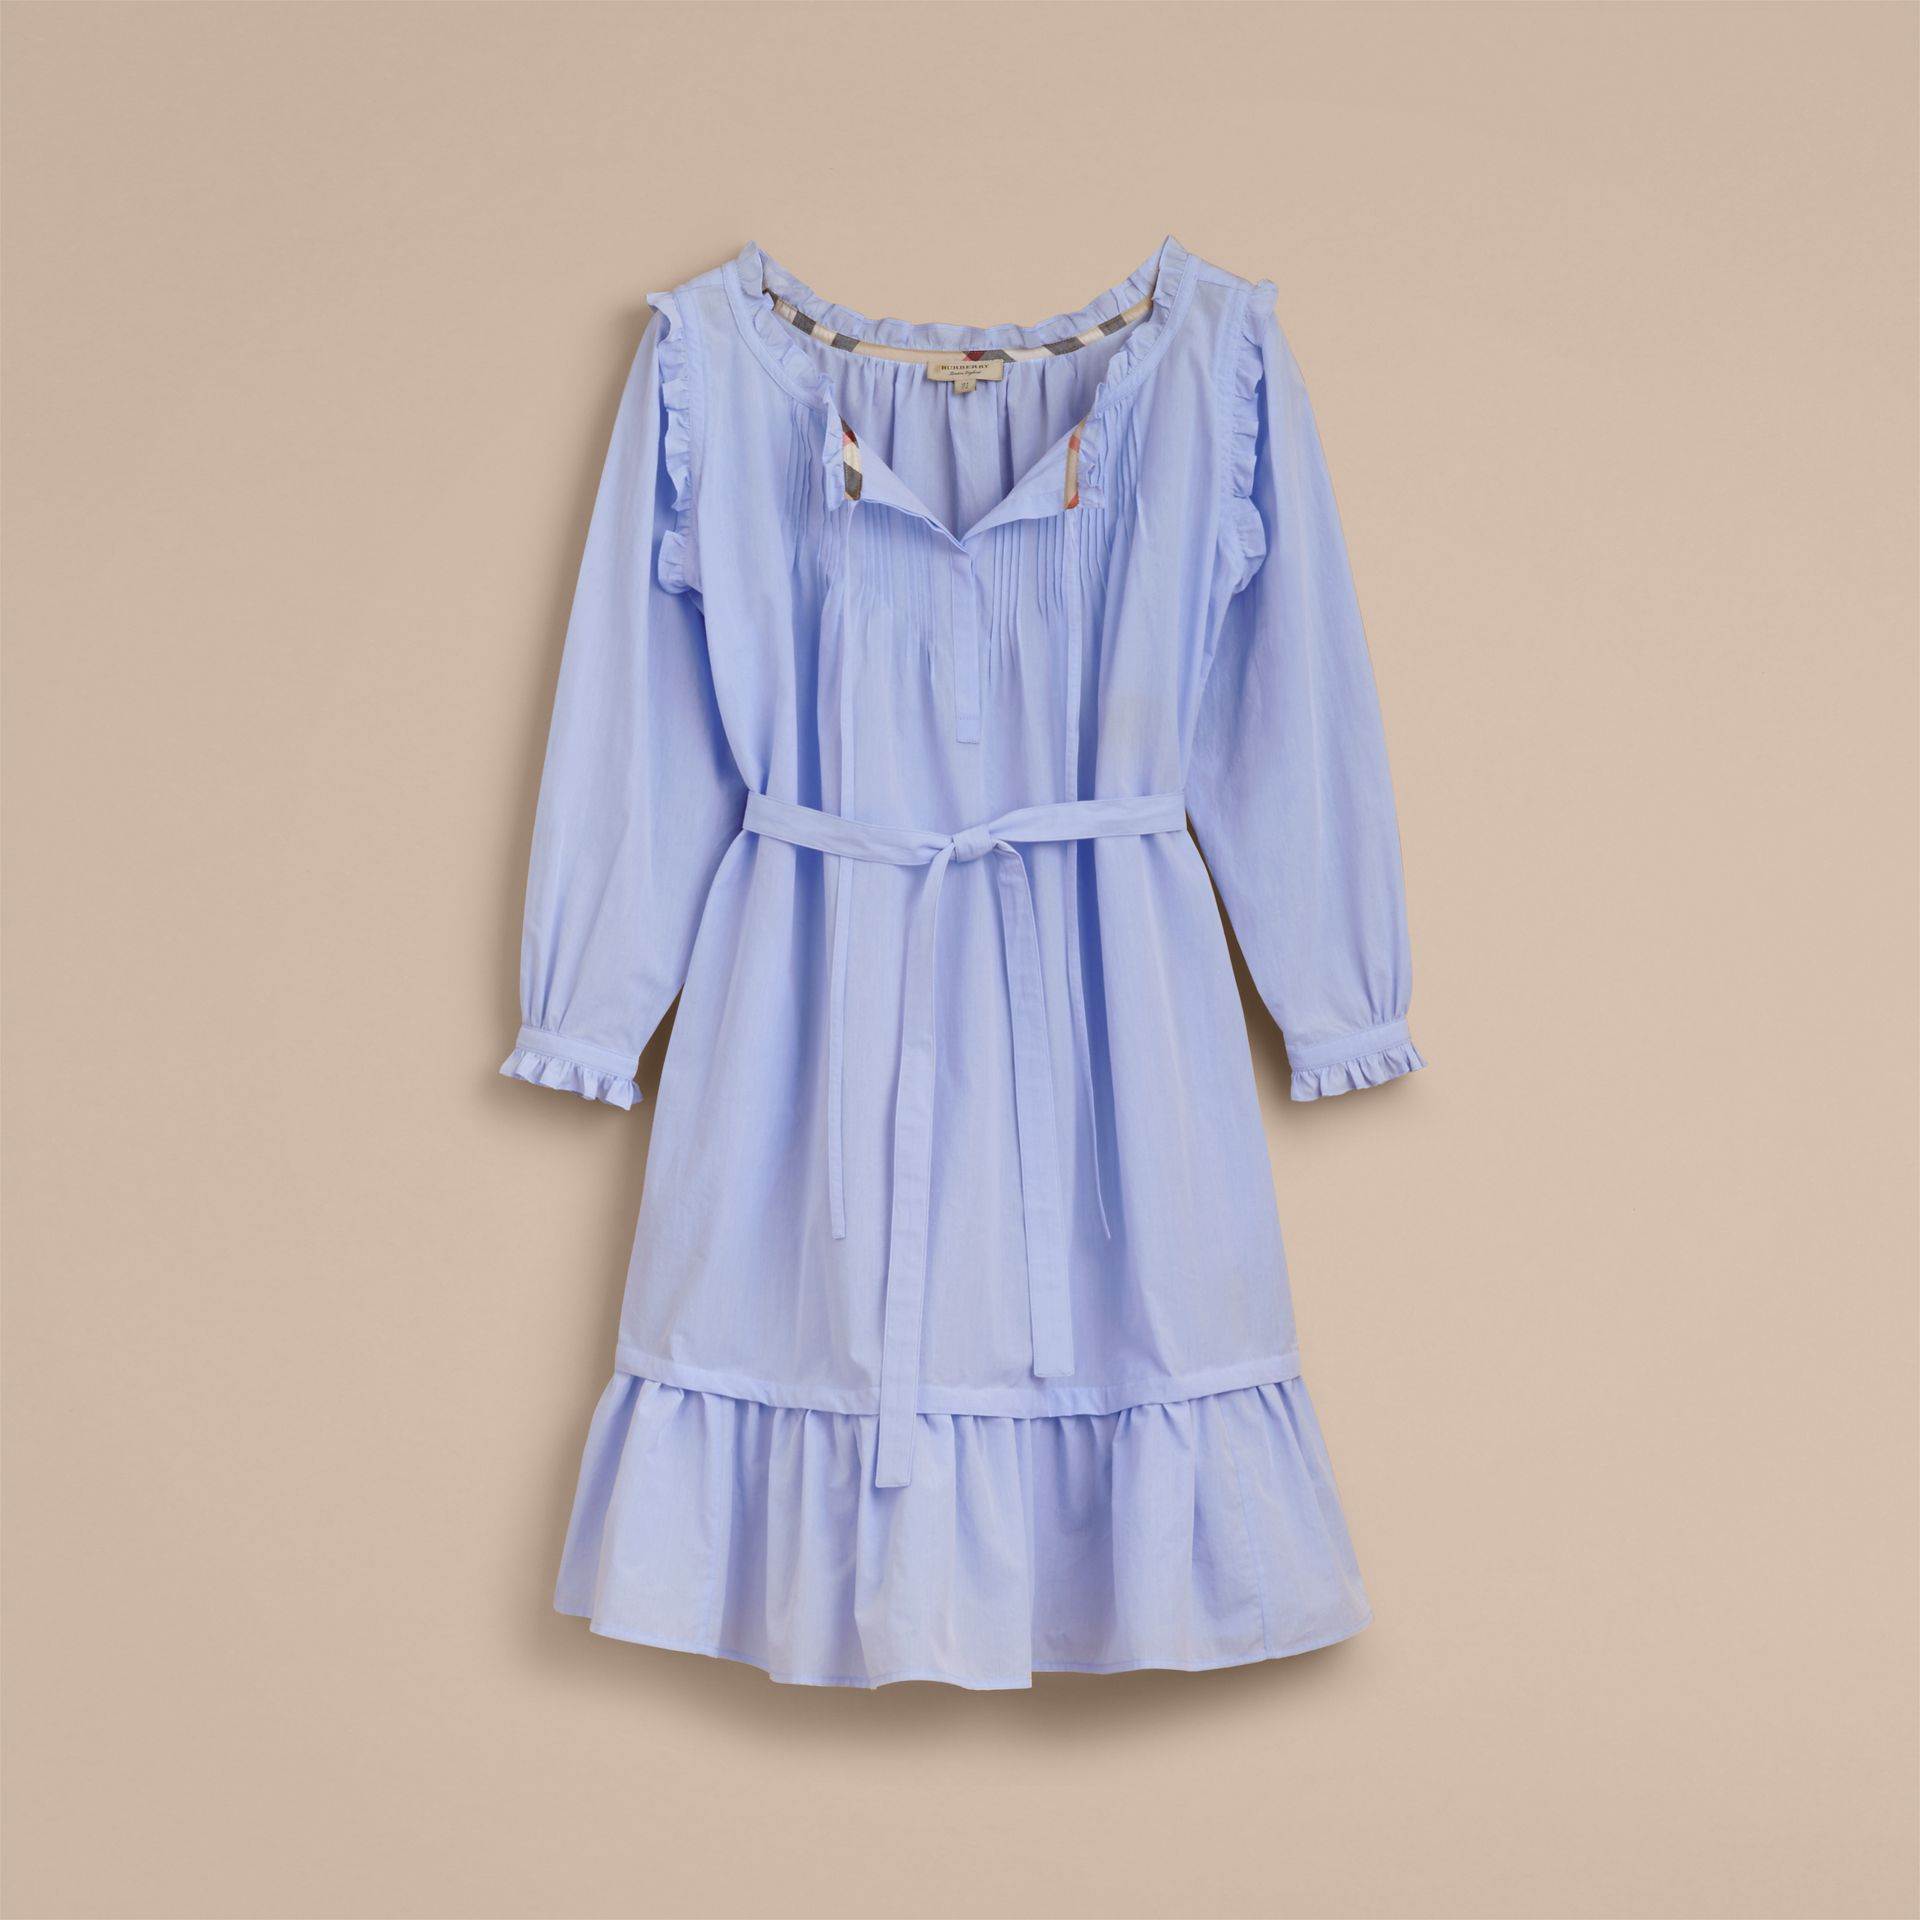 Ruffle and Pintuck Detail Cotton Dress - Women | Burberry - gallery image 4